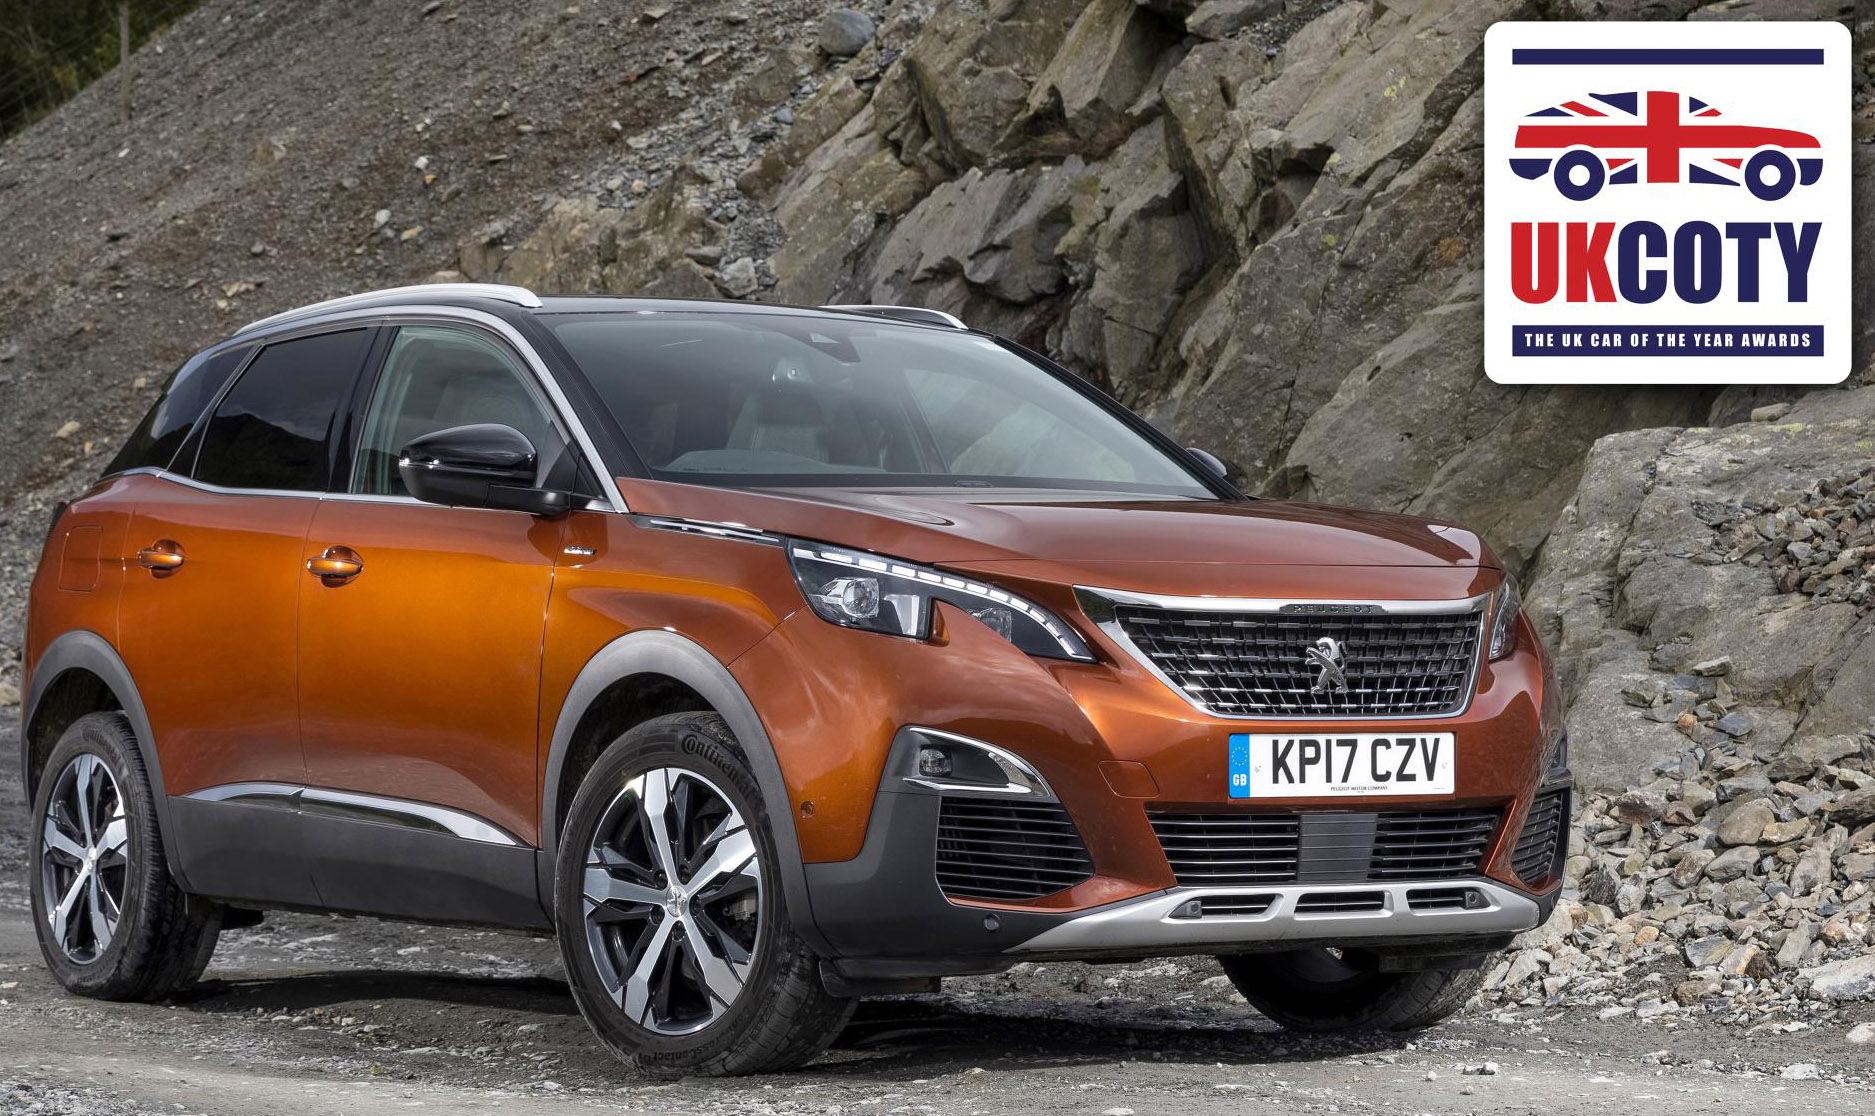 Best Uk Suv Peugeot 3008 Suv Announced As Best Family Car In The Uk